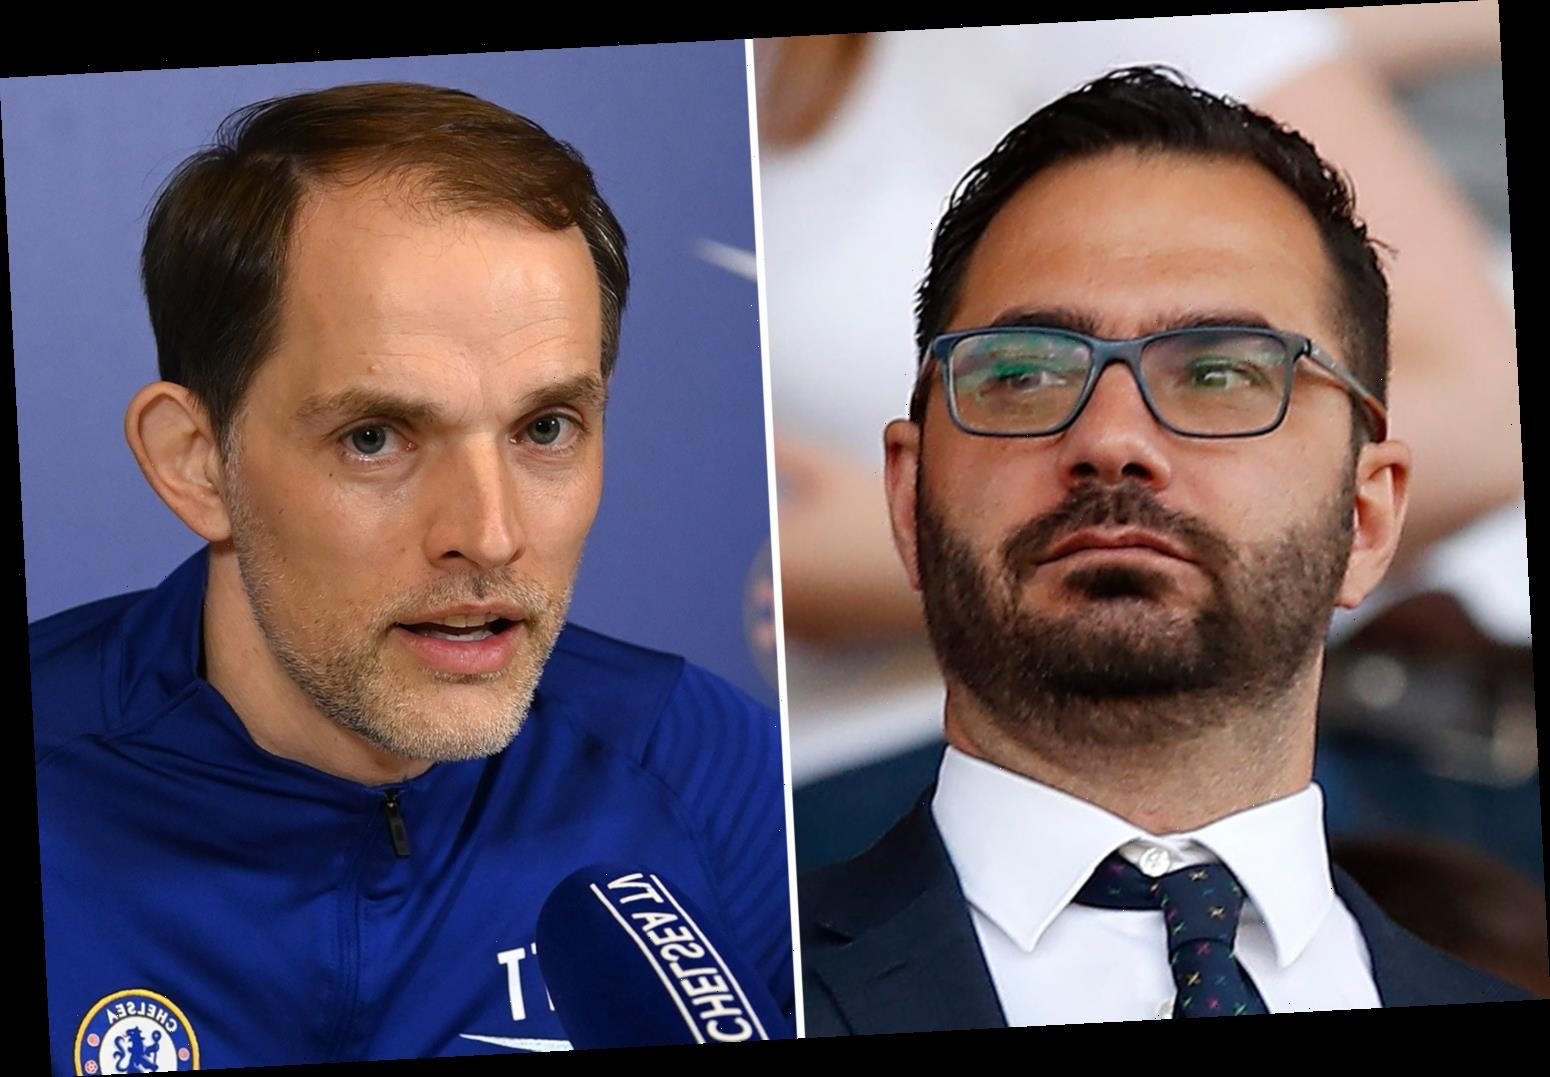 Leeds chief Orta reportedly spotted in heated exchange with Tuchel after Chelsea boss's recent clash with Solskjaer